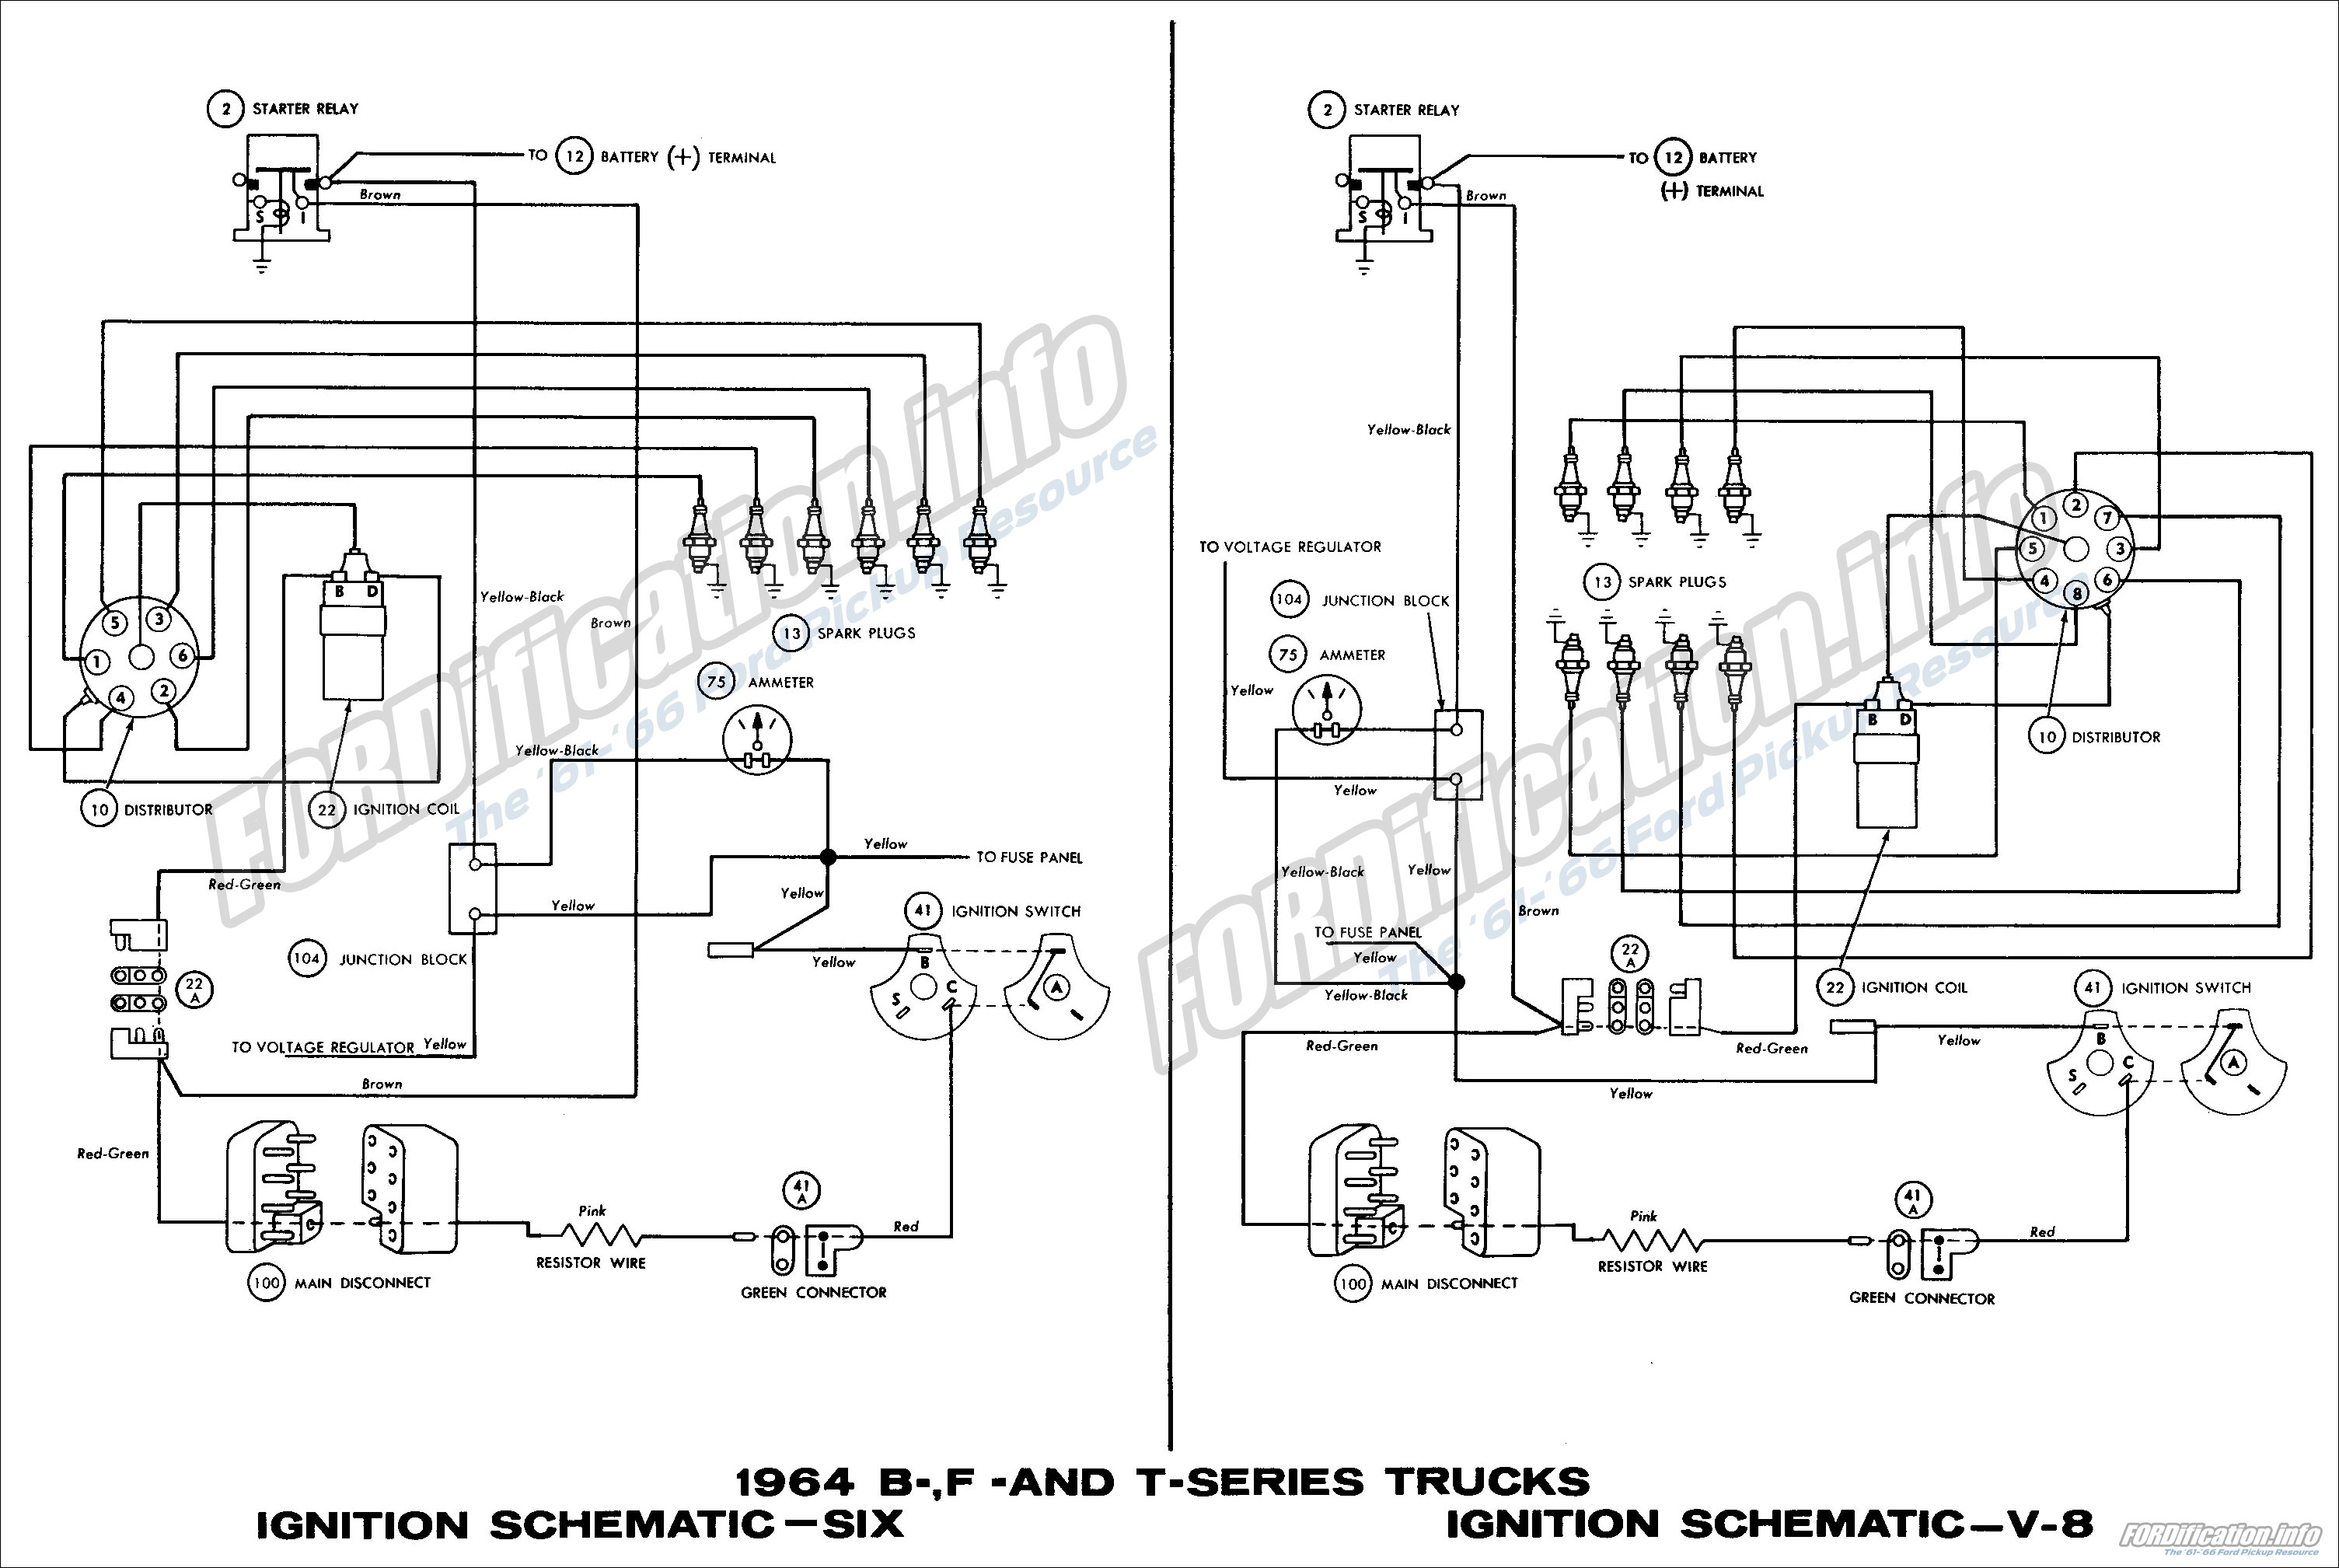 1964 Ford F250 Wiring Diagram Great Design Of 2000 F 250 Alternator Starter Solenoid 33 F100 1965 Manual